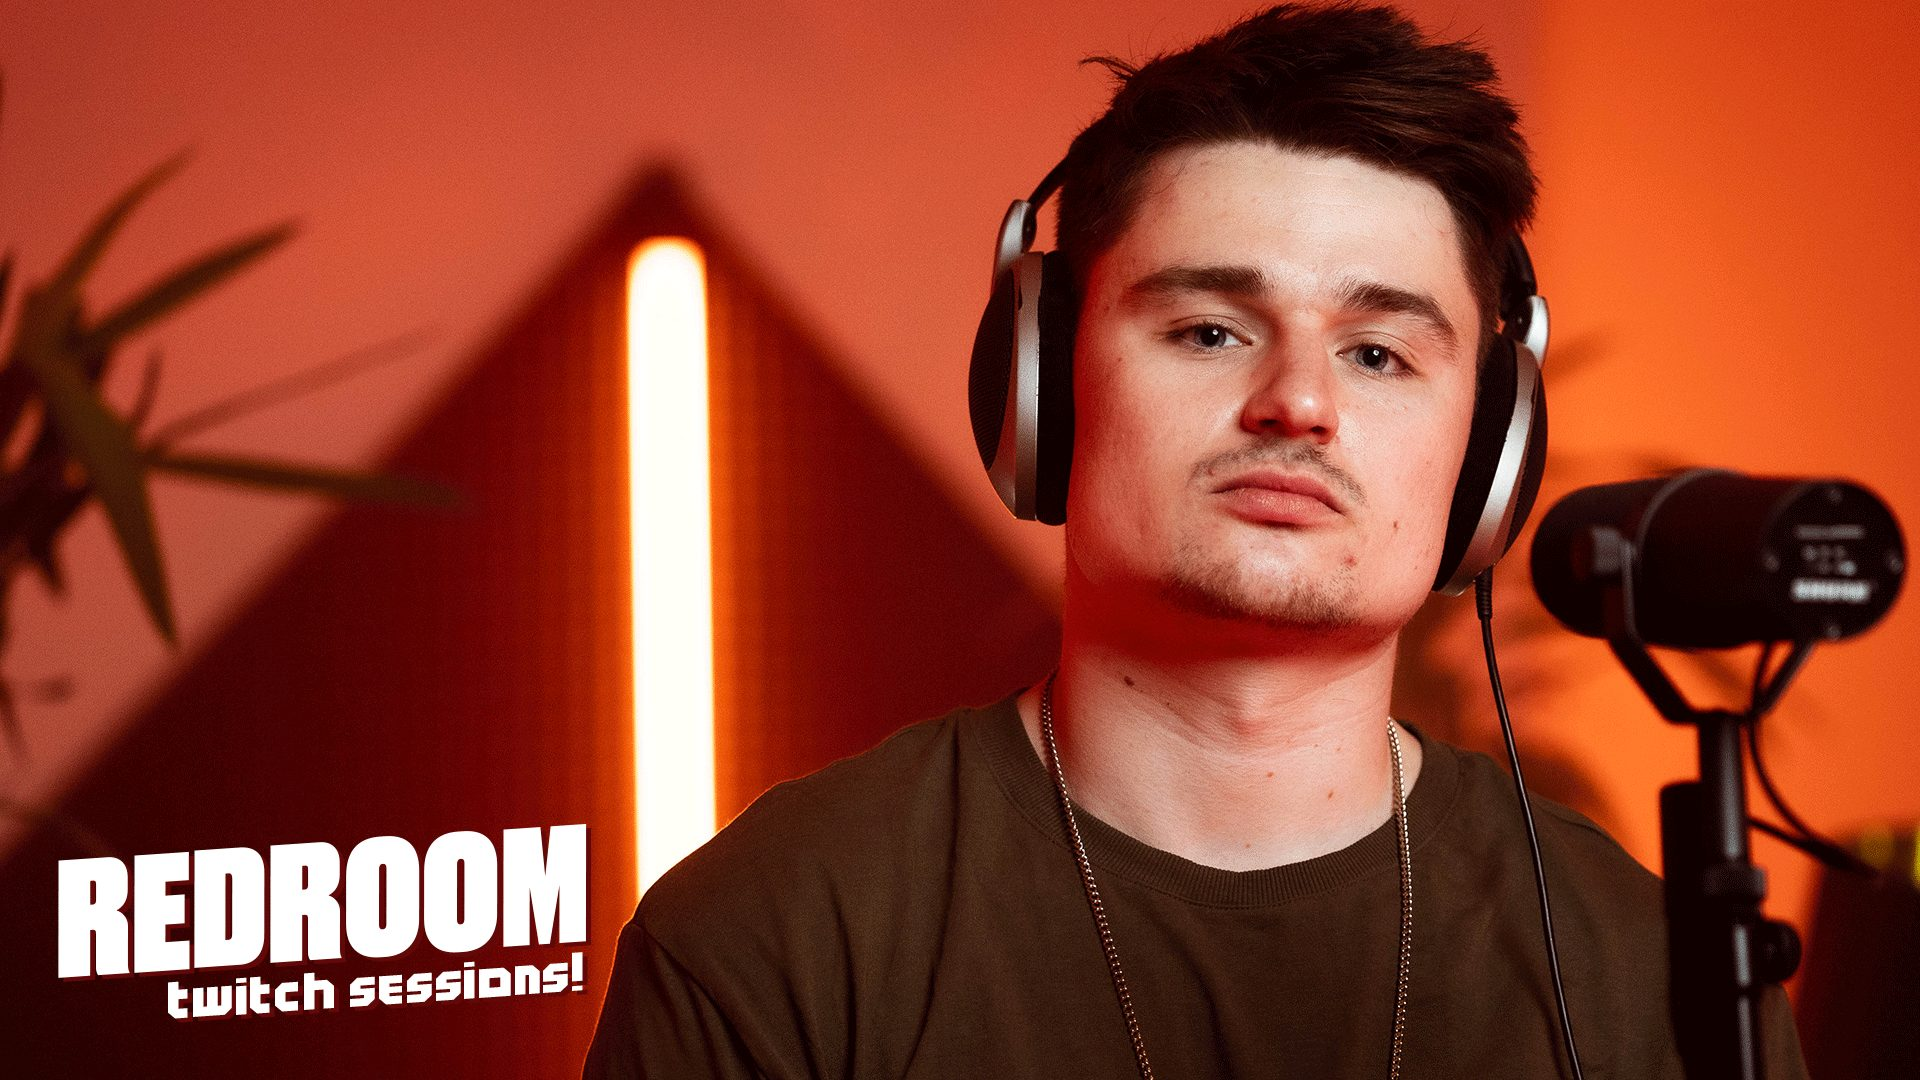 Clep - Fehler (Redroom Sessions) |16BARS